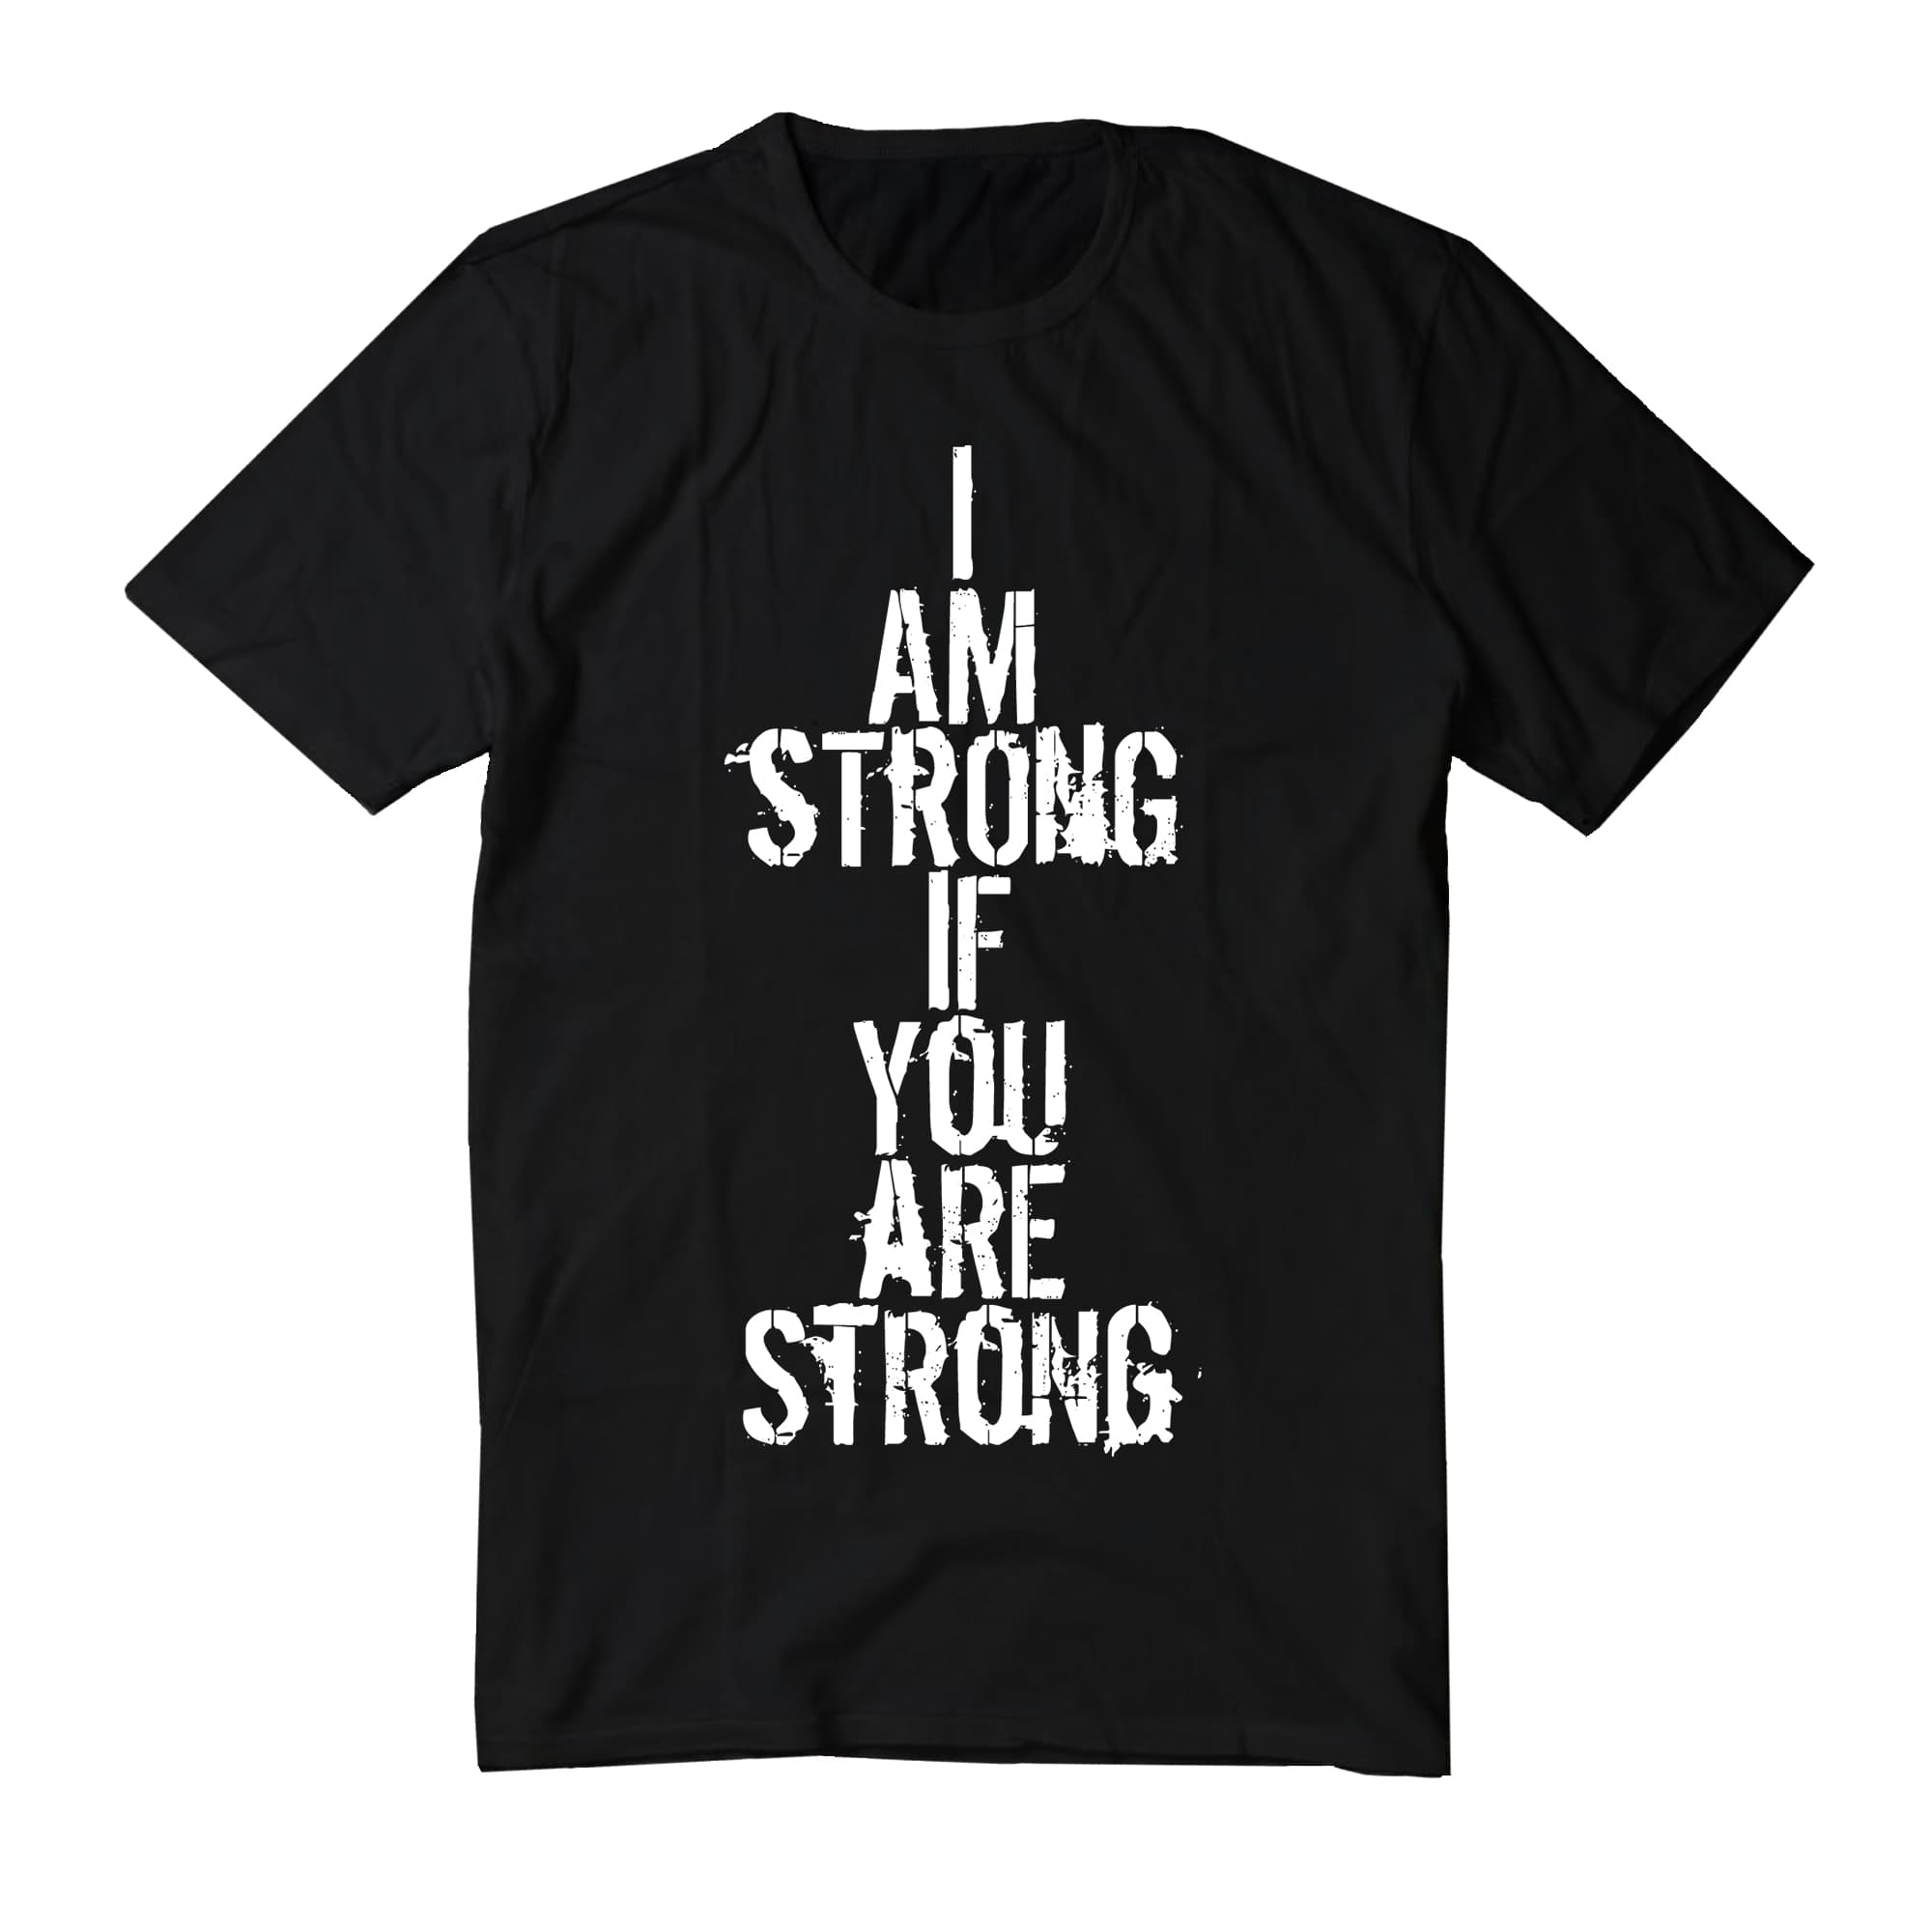 'I Am Strong if You Are Strong' Charity T-Shirt - Black